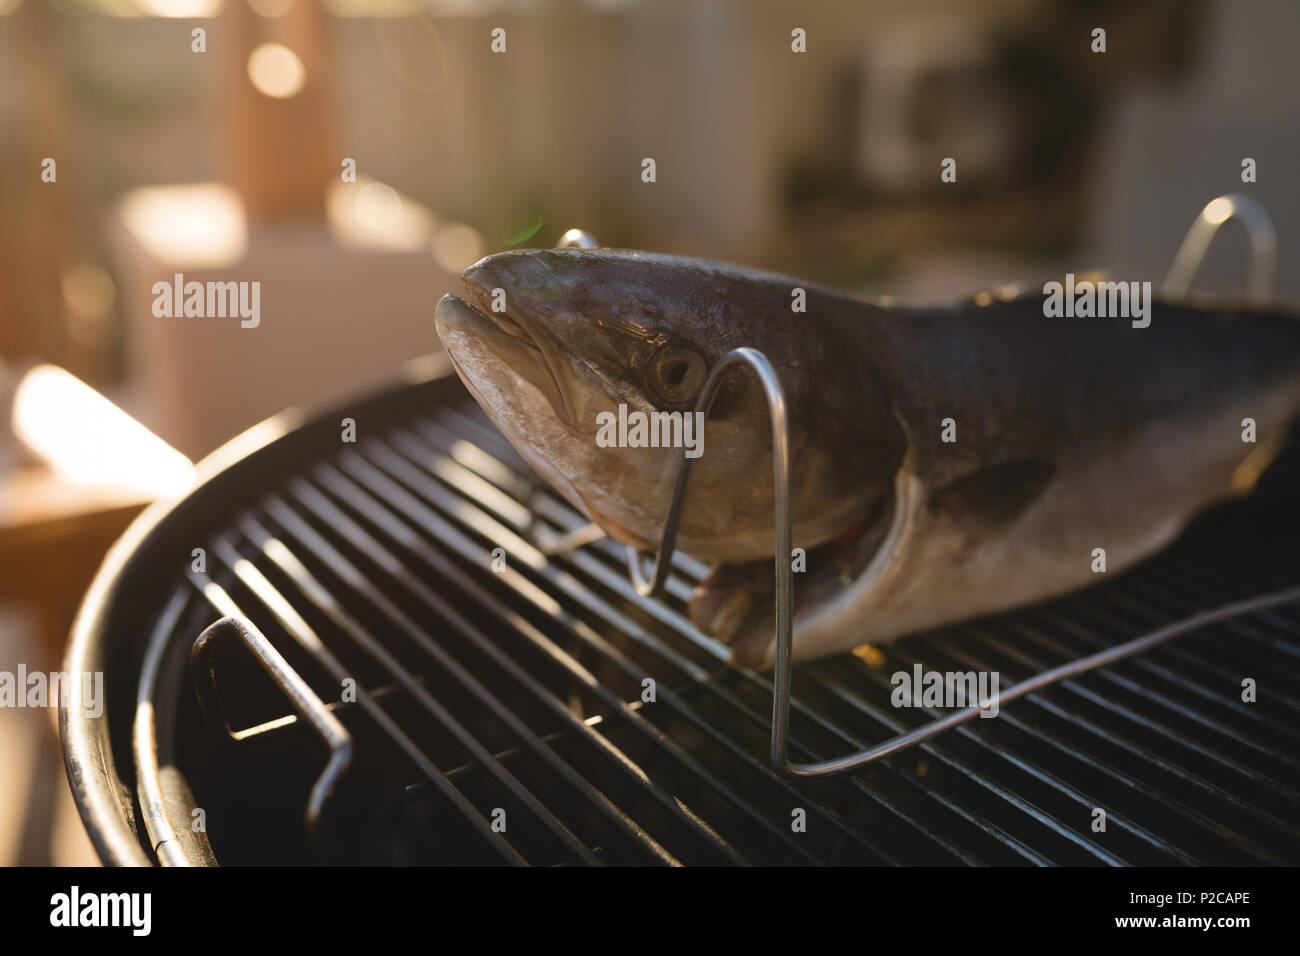 Fish on a barbeque in the backyard - Stock Image